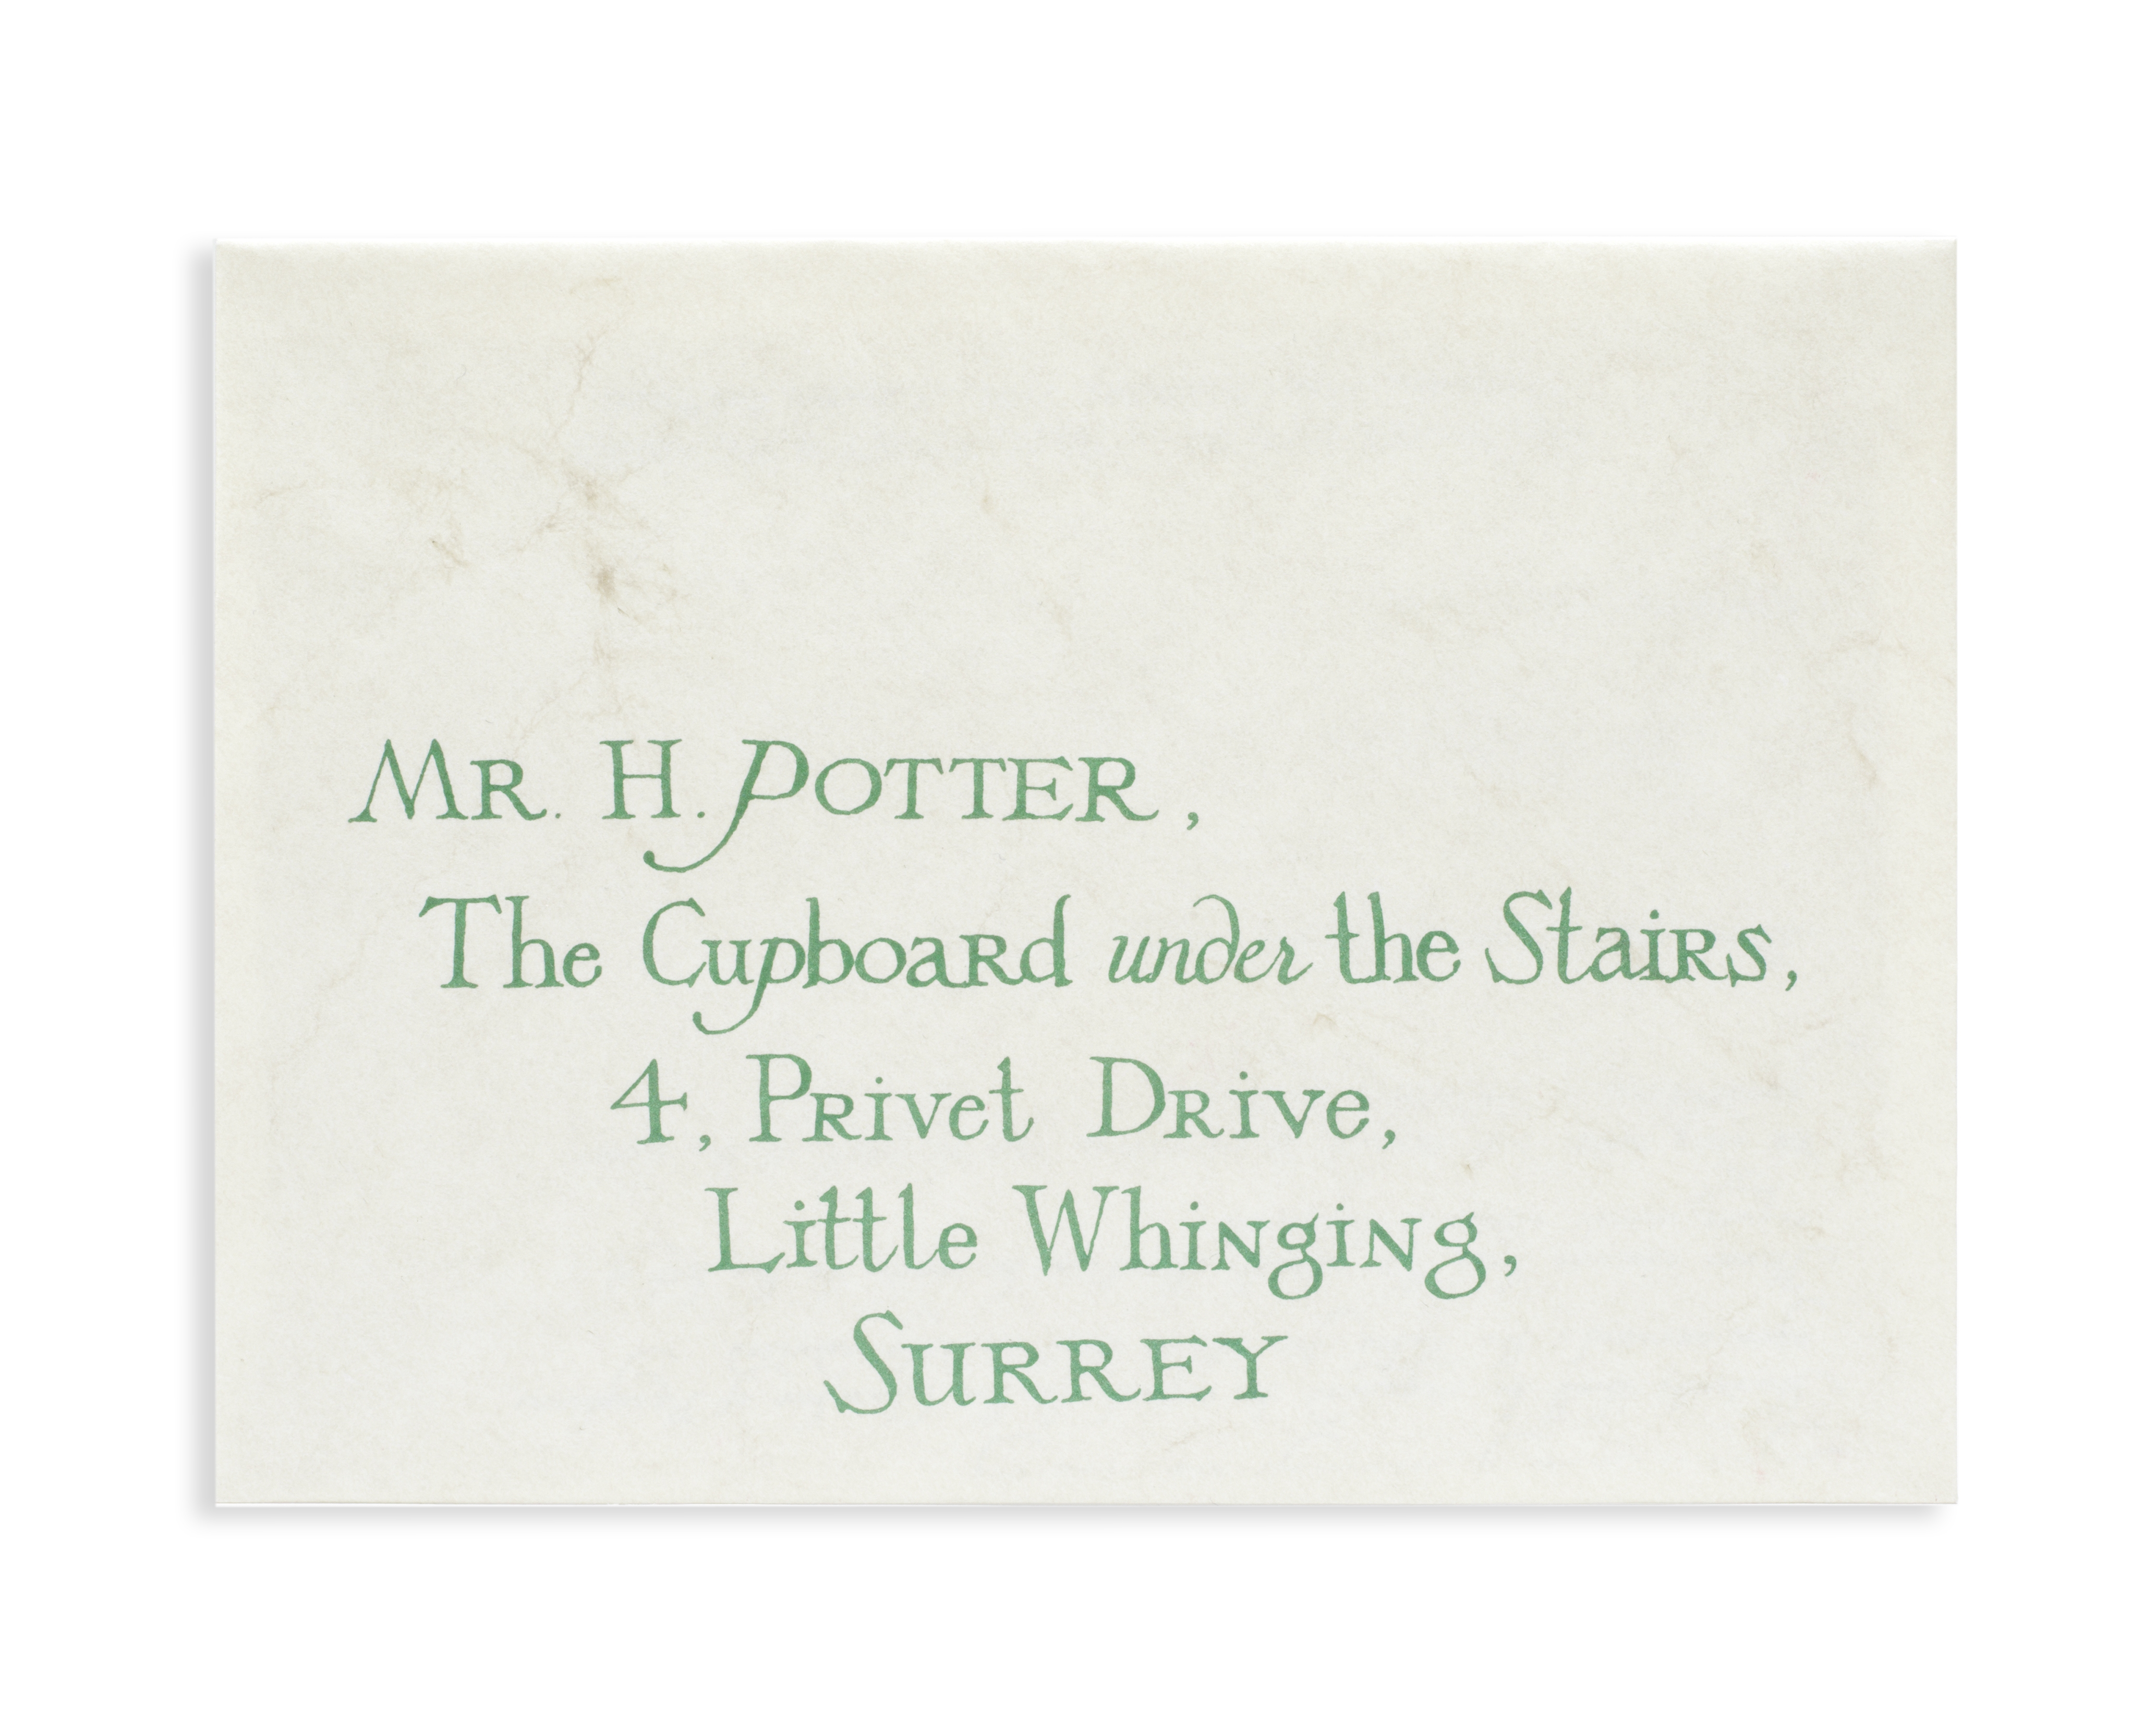 Lot 36A - Harry Potter: A Hogwarts acceptance letter with envelope from The Philosopher's Stone, Warner Bro...